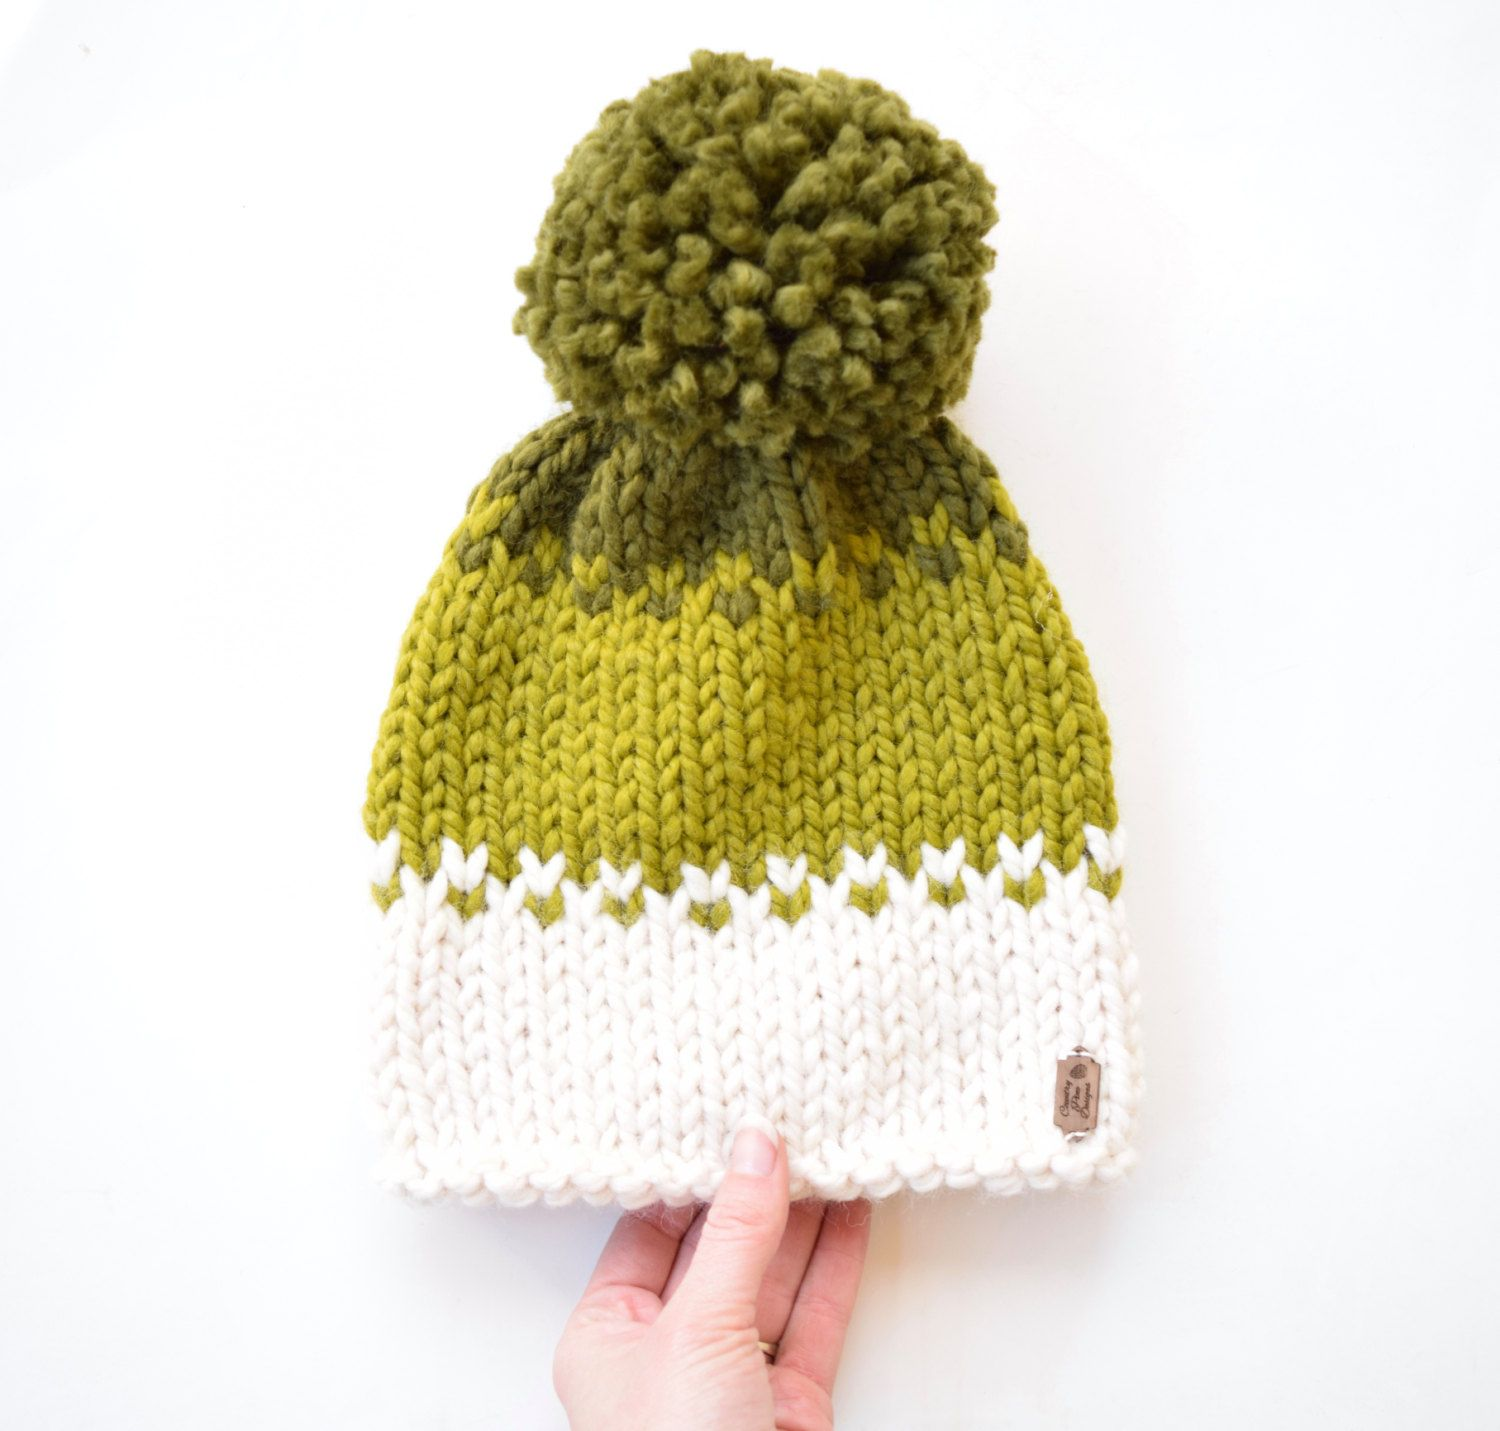 Ombré Knitted hat with pom pom, knitted fair isle hat, knitted hat ...